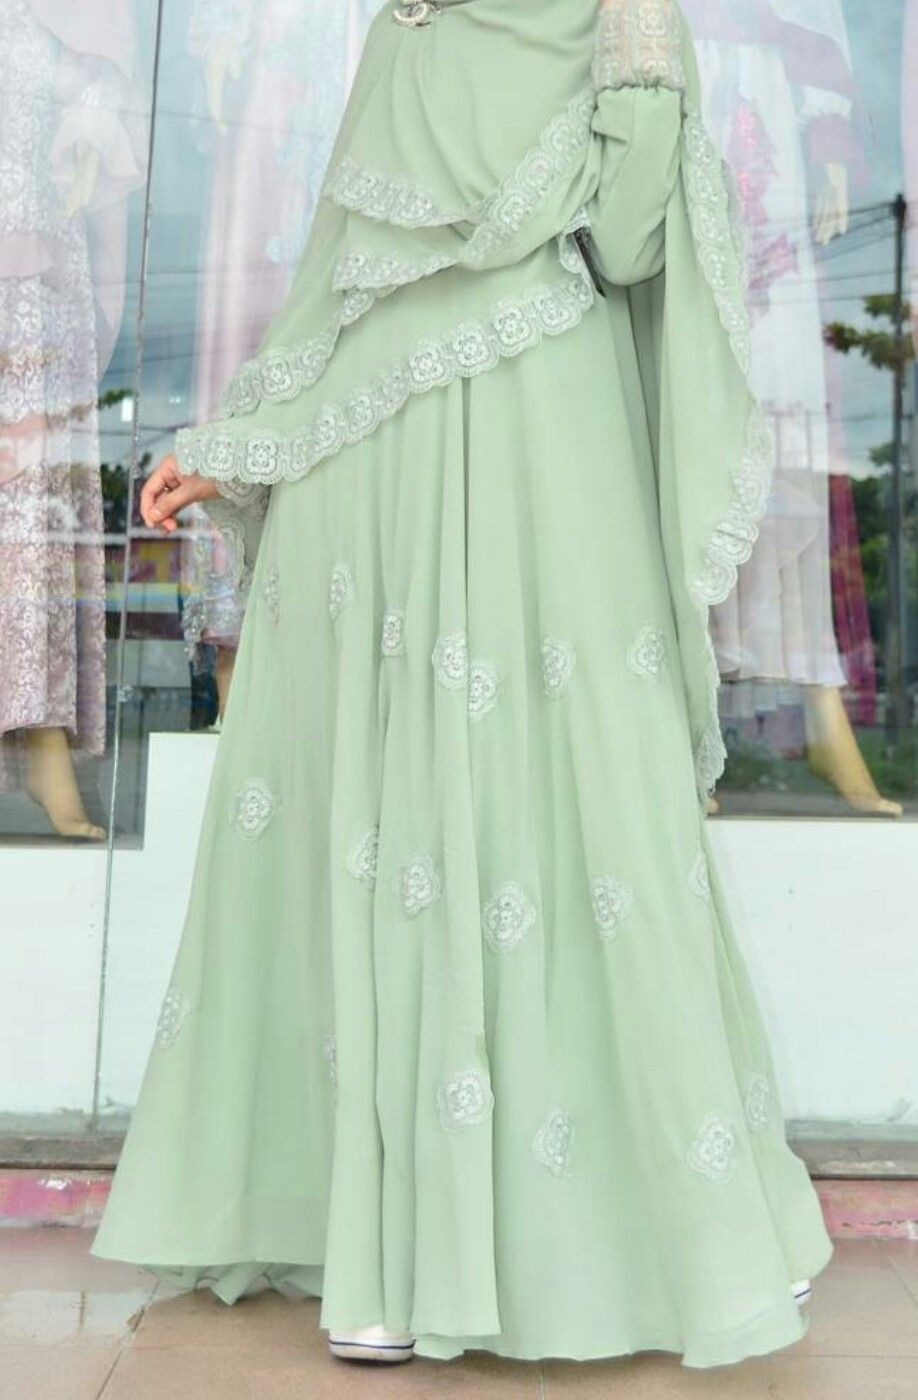 Pin by laion noax on abayas pinterest abayas hijabs and fashion